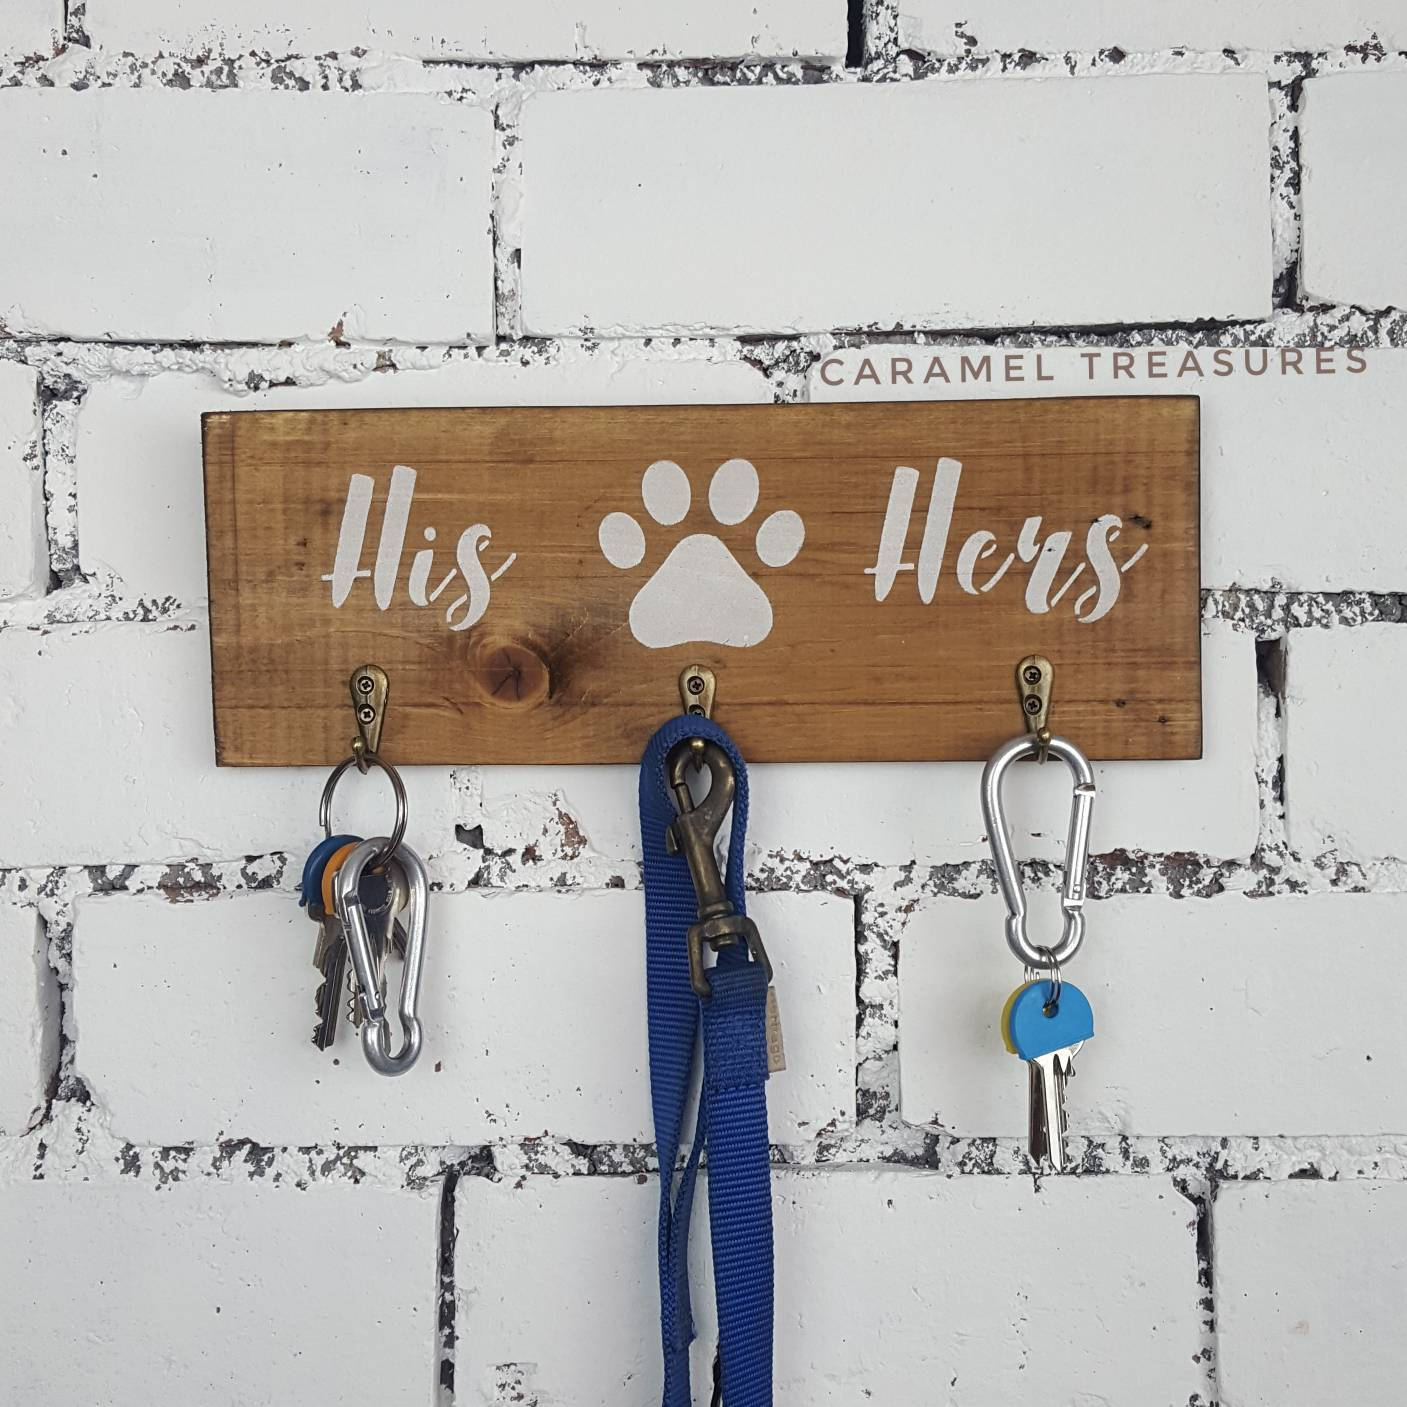 Rustic dog lead and key holder for wall - Caramel Treasures